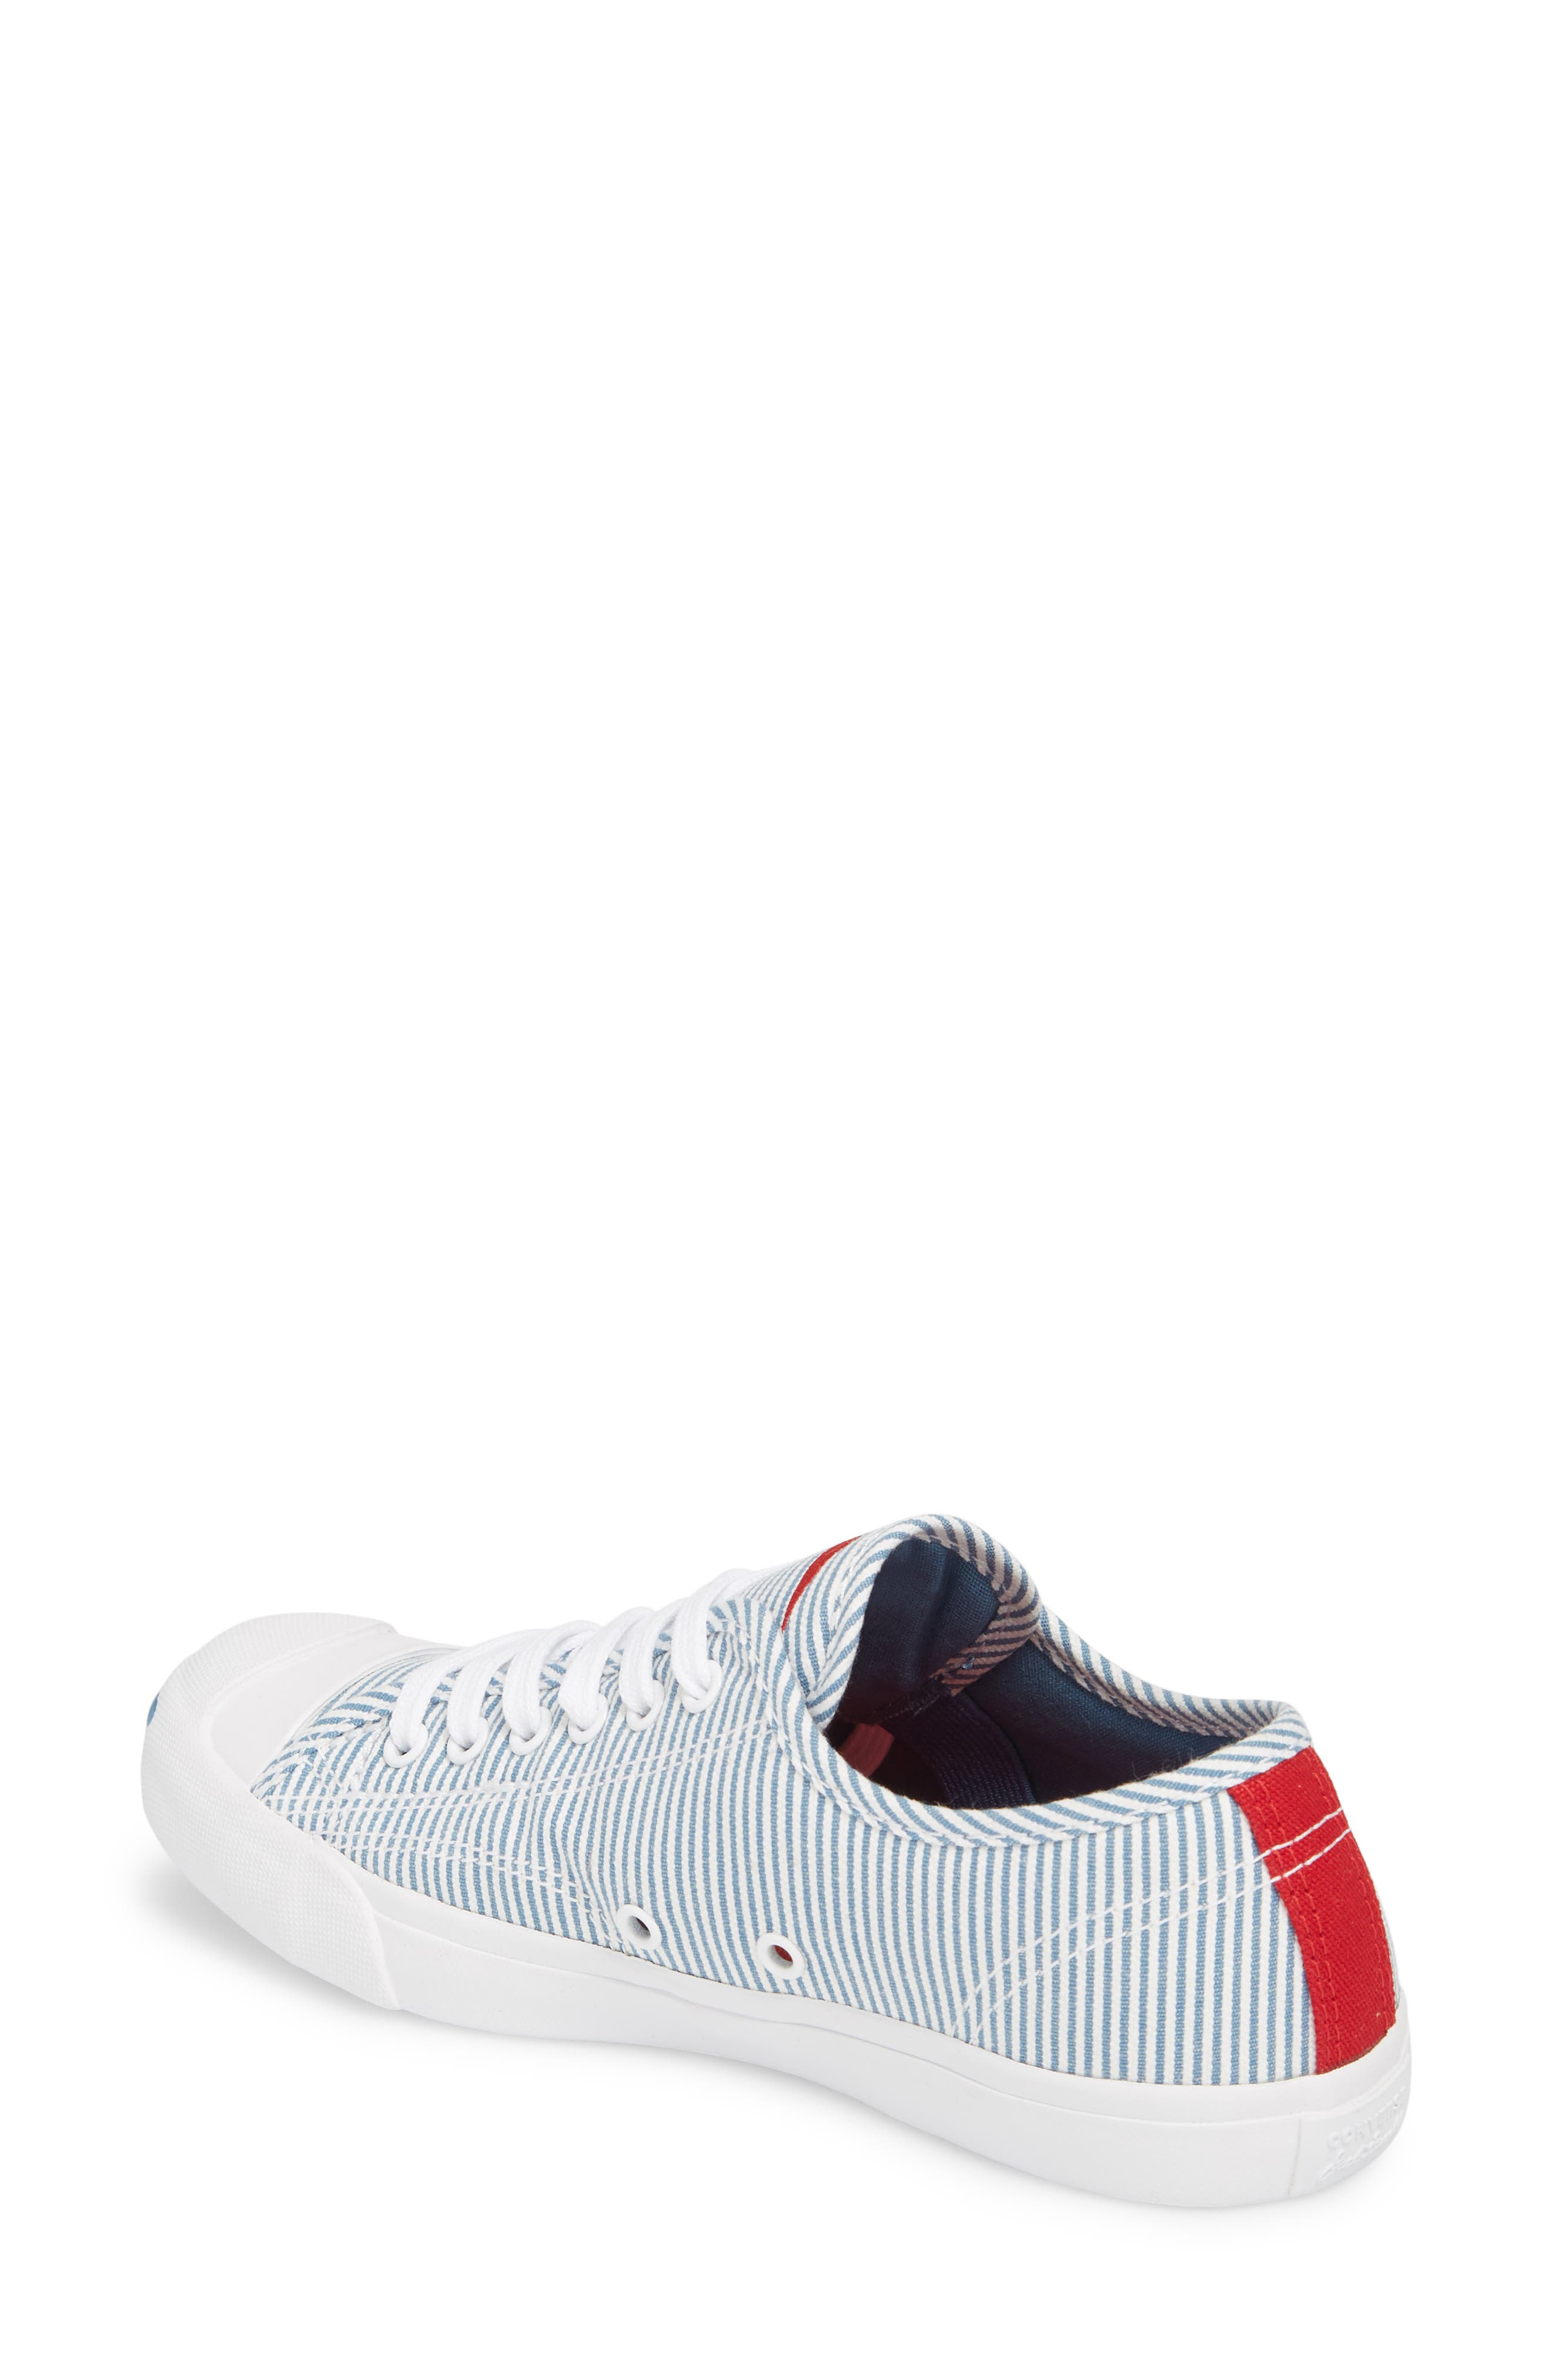 Jack Purcell Low Top Sneaker,                             Alternate thumbnail 3, color,                             Aegean Storm